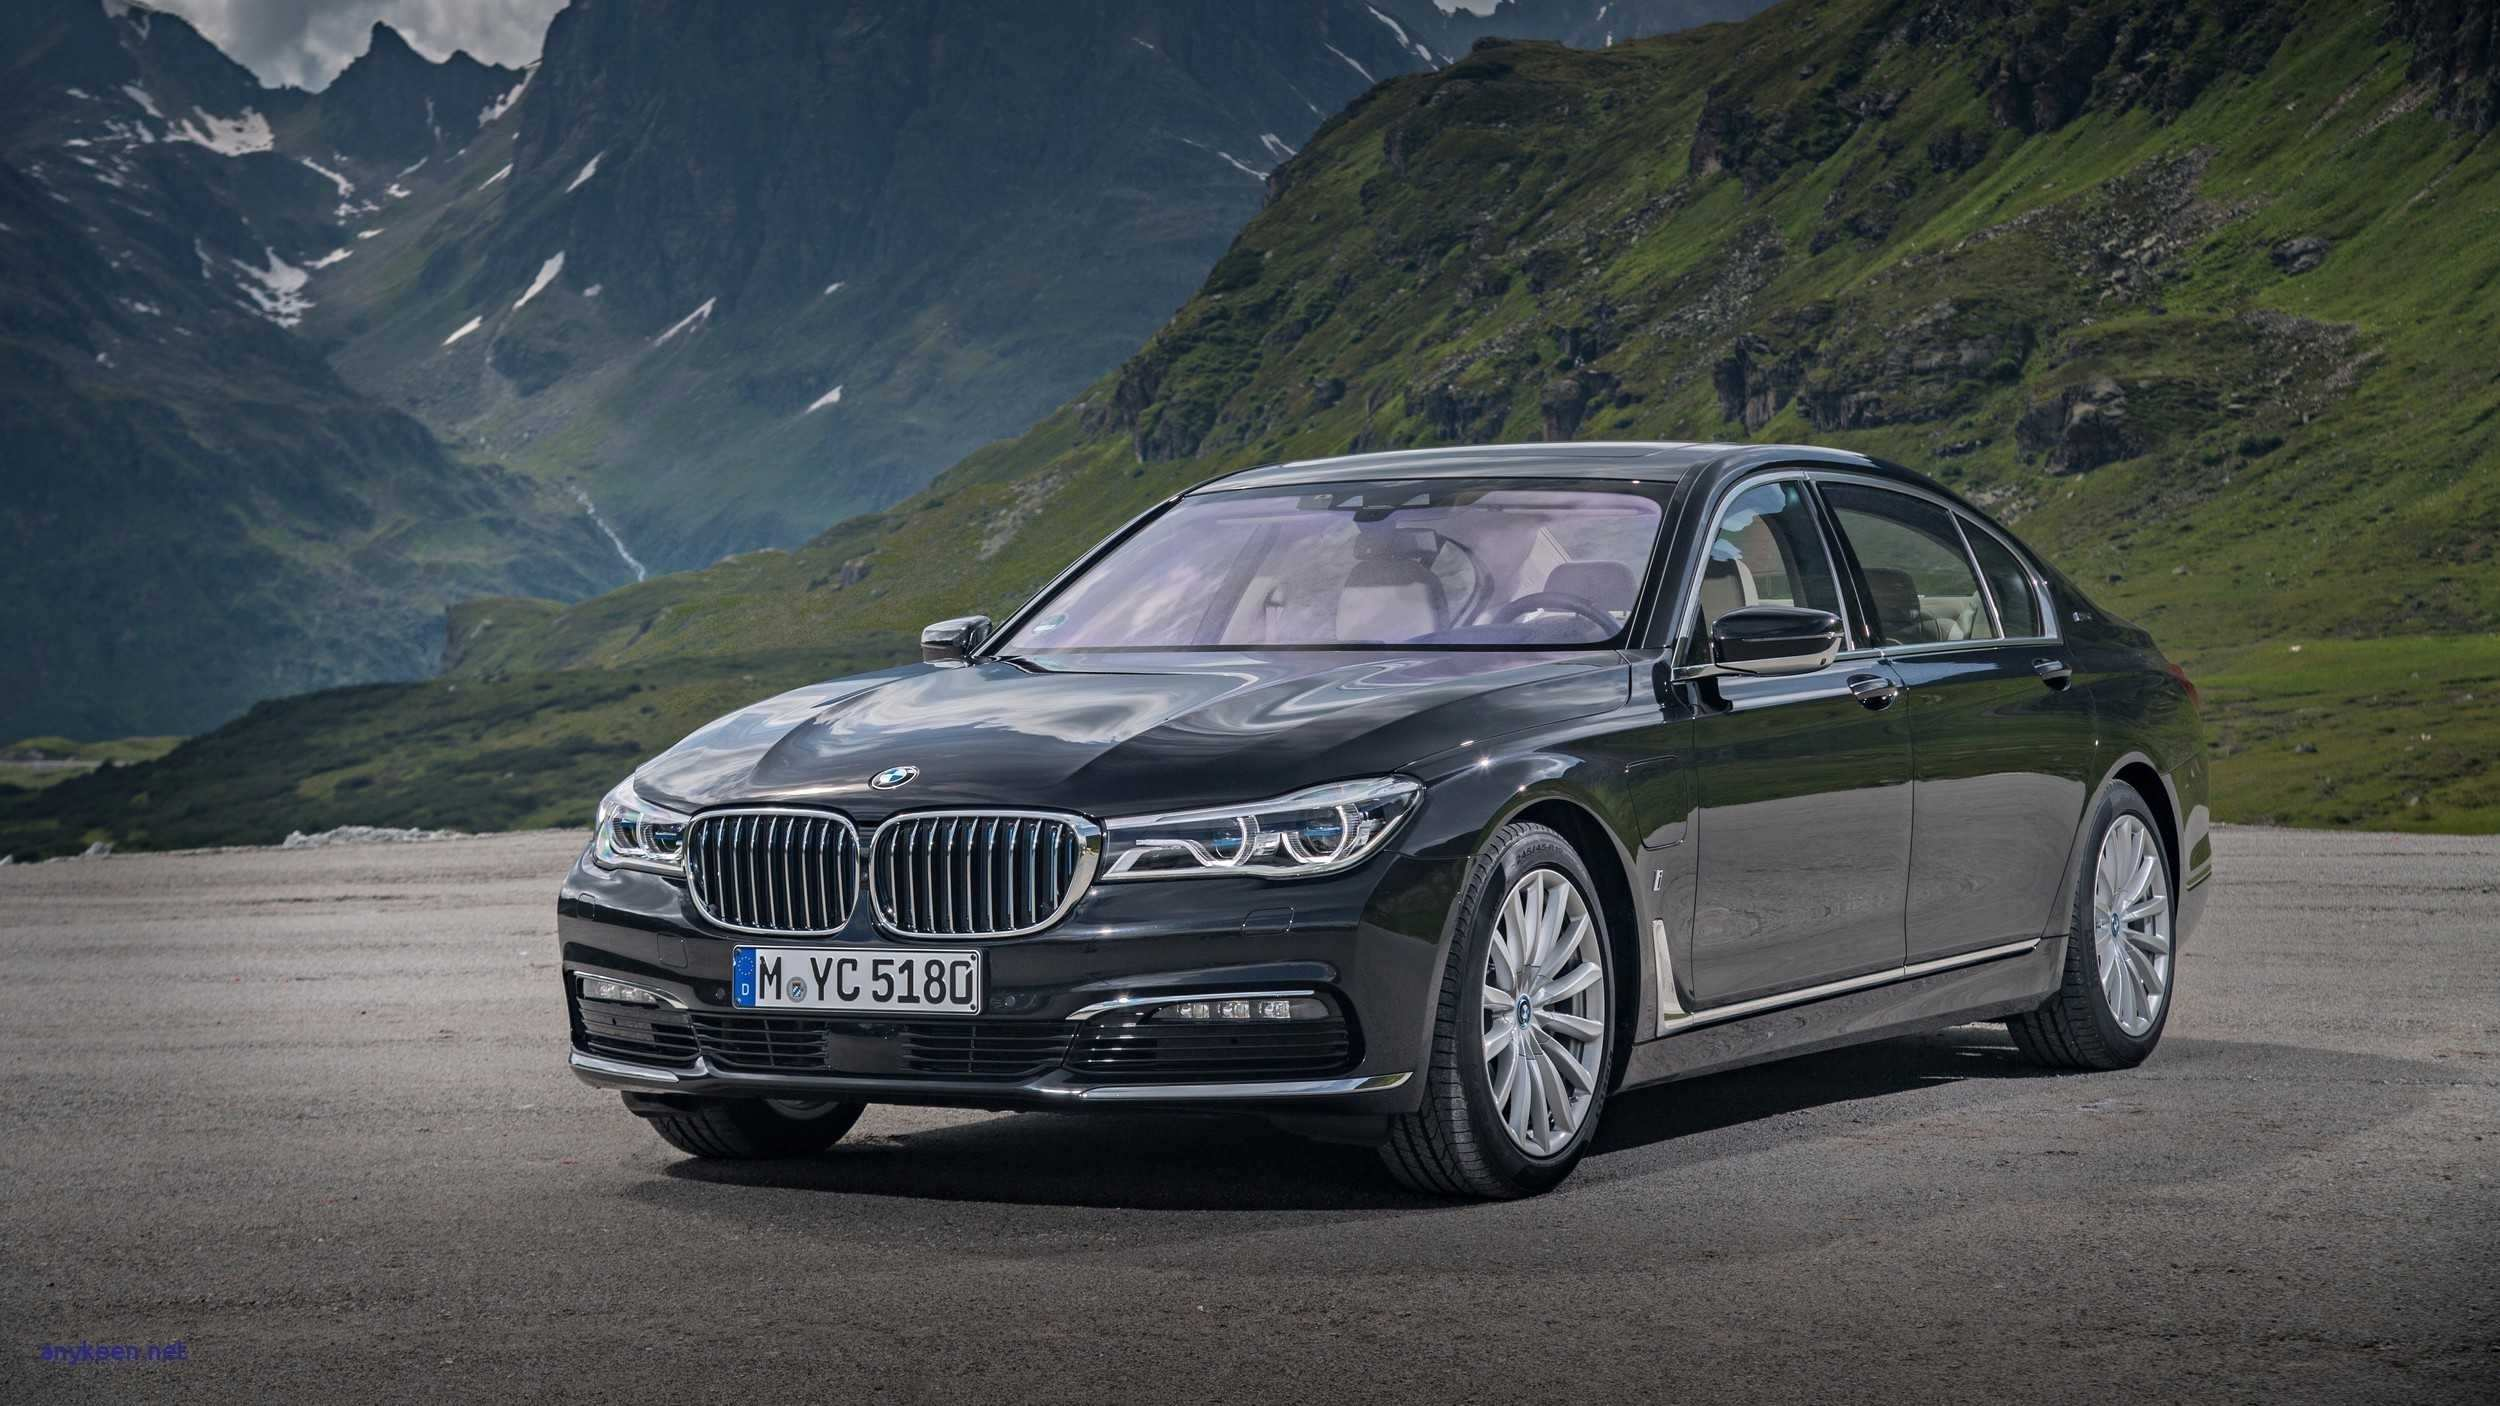 52 New 2019 BMW 7 Series Perfection New First Drive